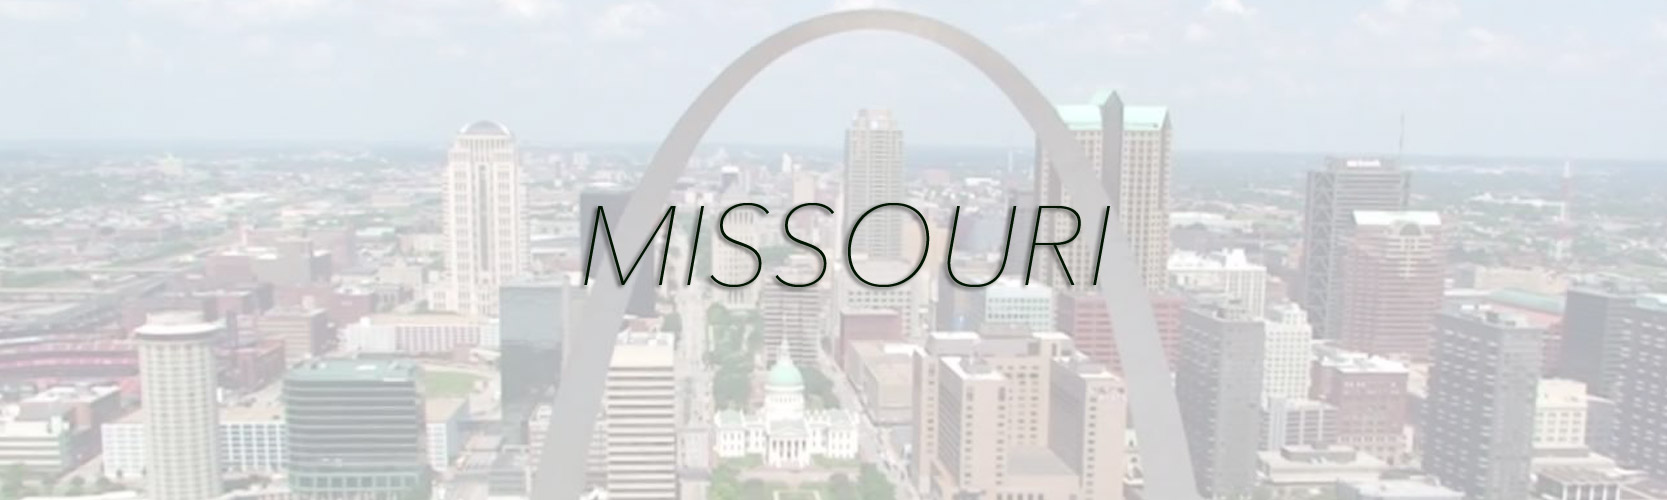 Shipping Futons, Sofa Beds, and Other Futon Shop products to Missouri